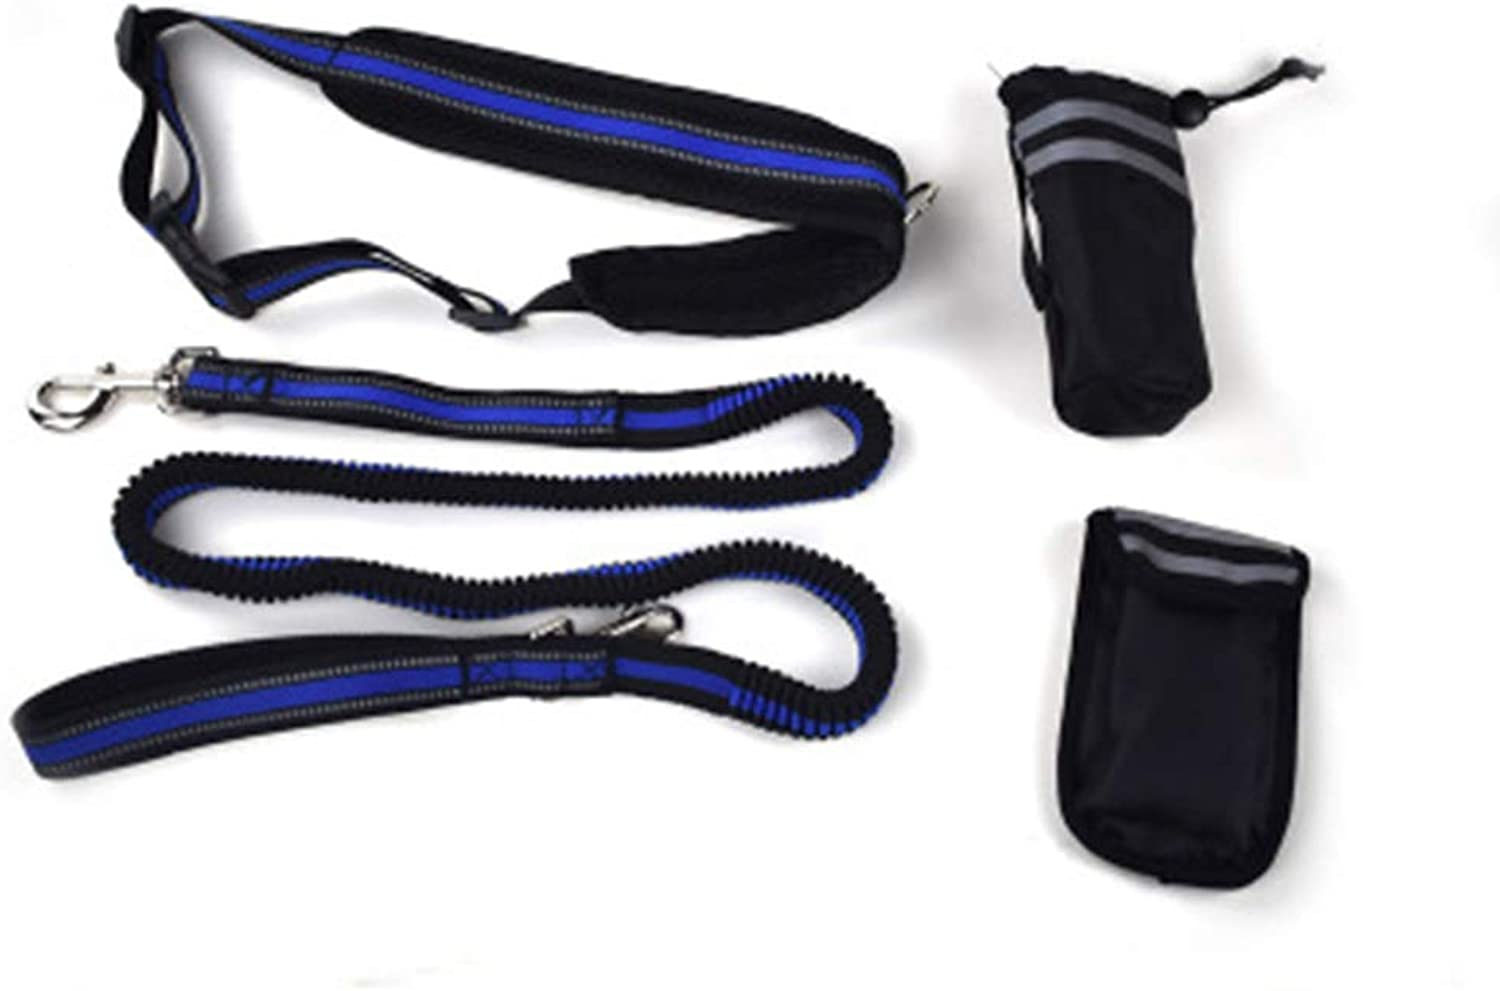 Adjustable Multifunction Nylon Reflective Pet Leash